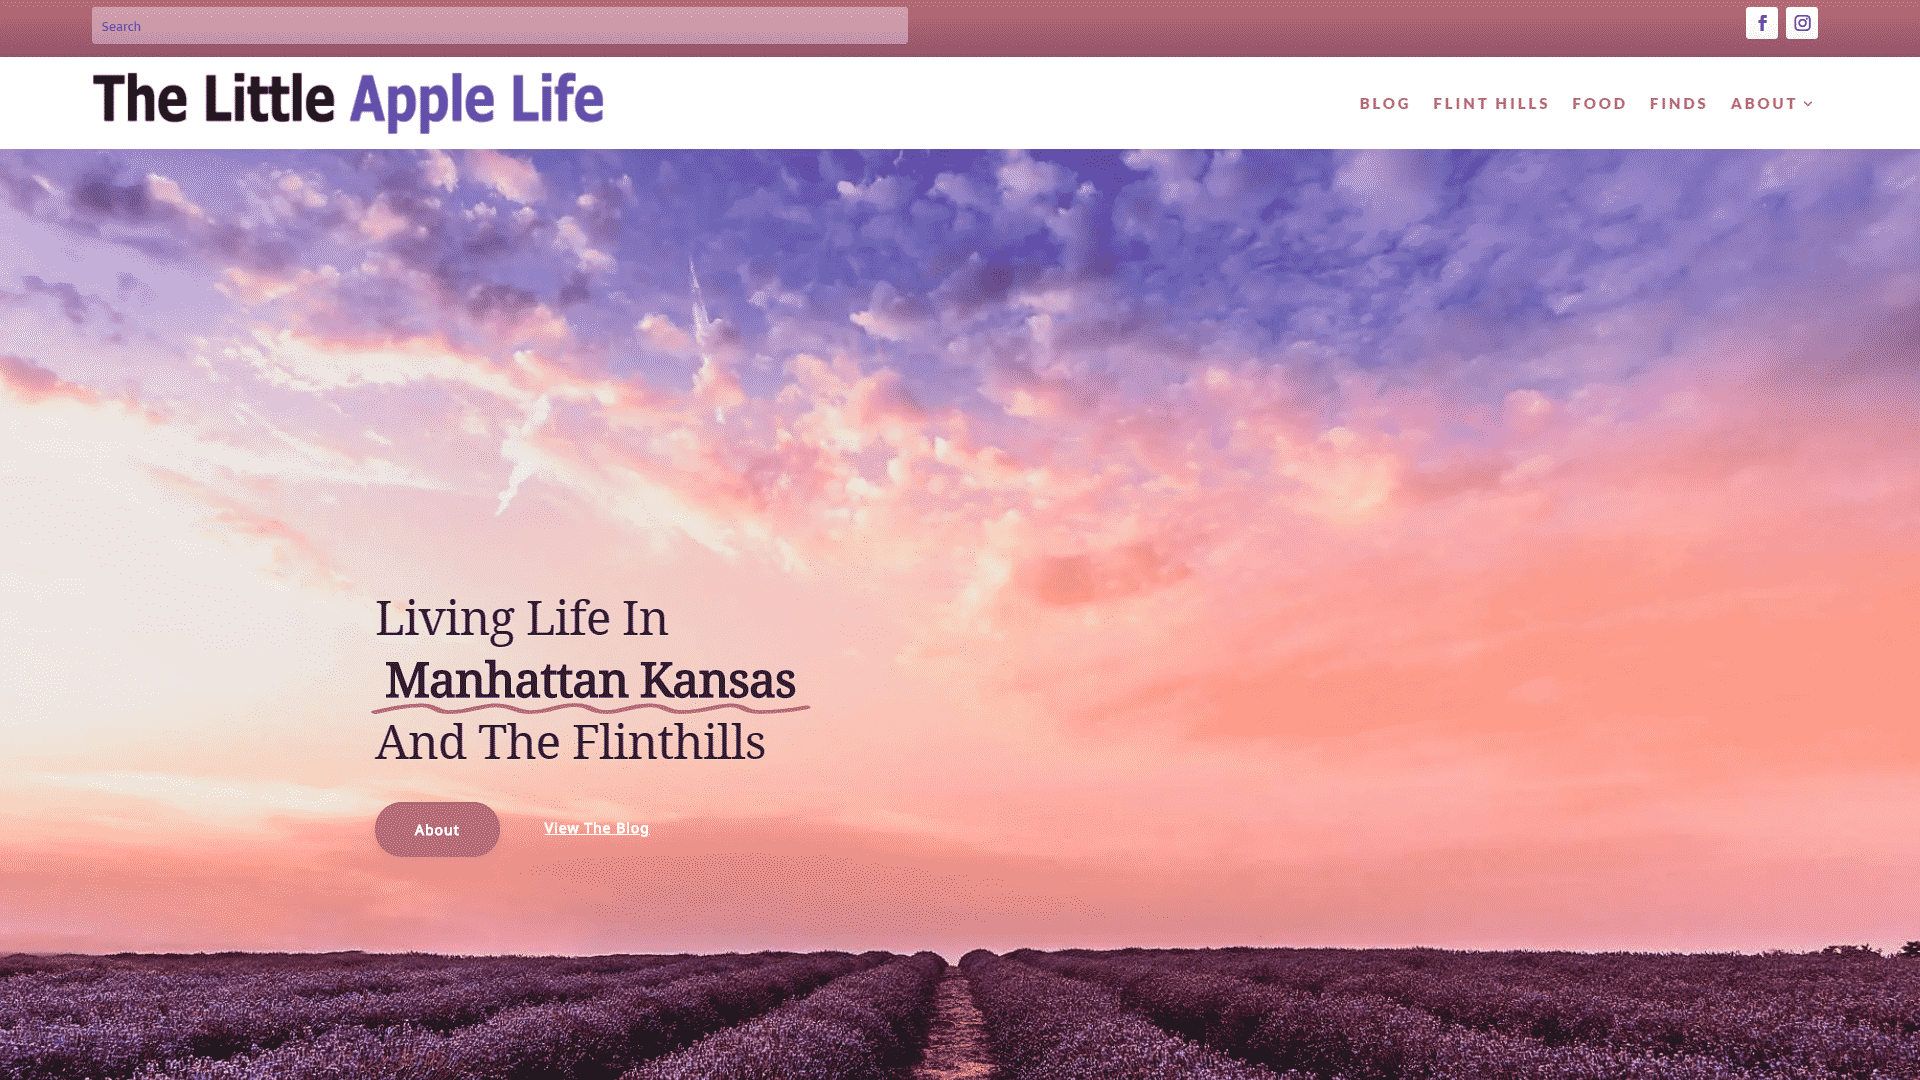 The Little Apple Life Blog